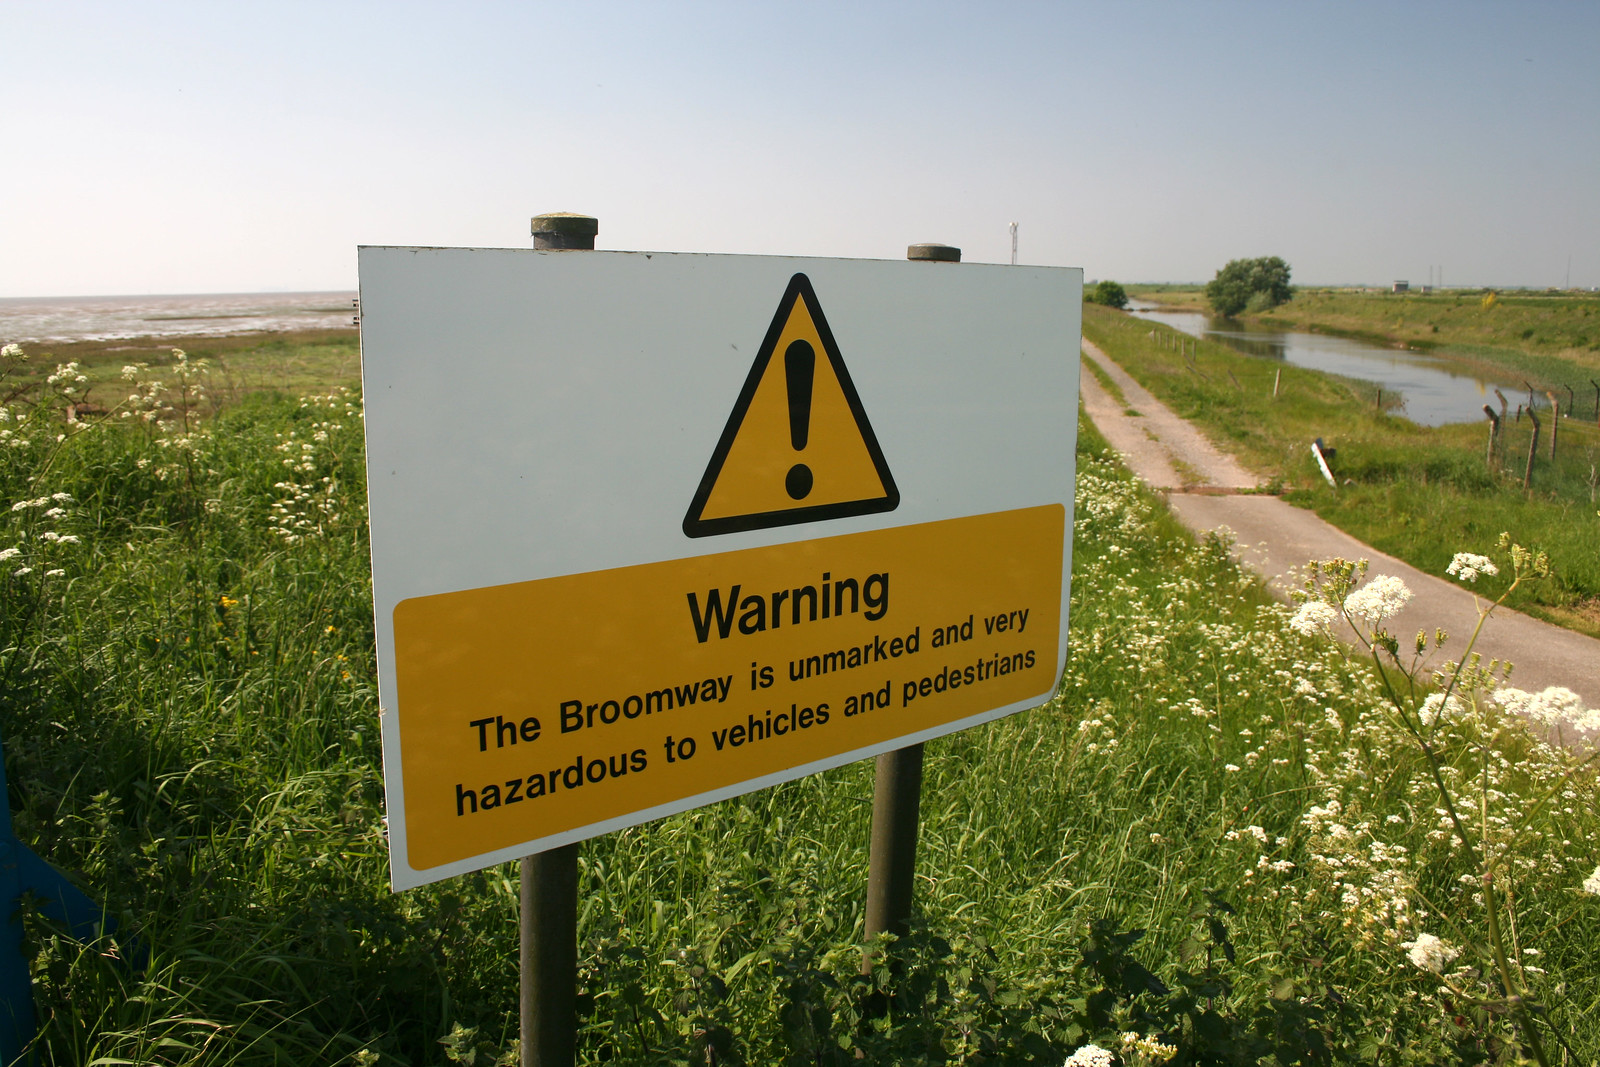 Broomway warning sign on Foulness Island